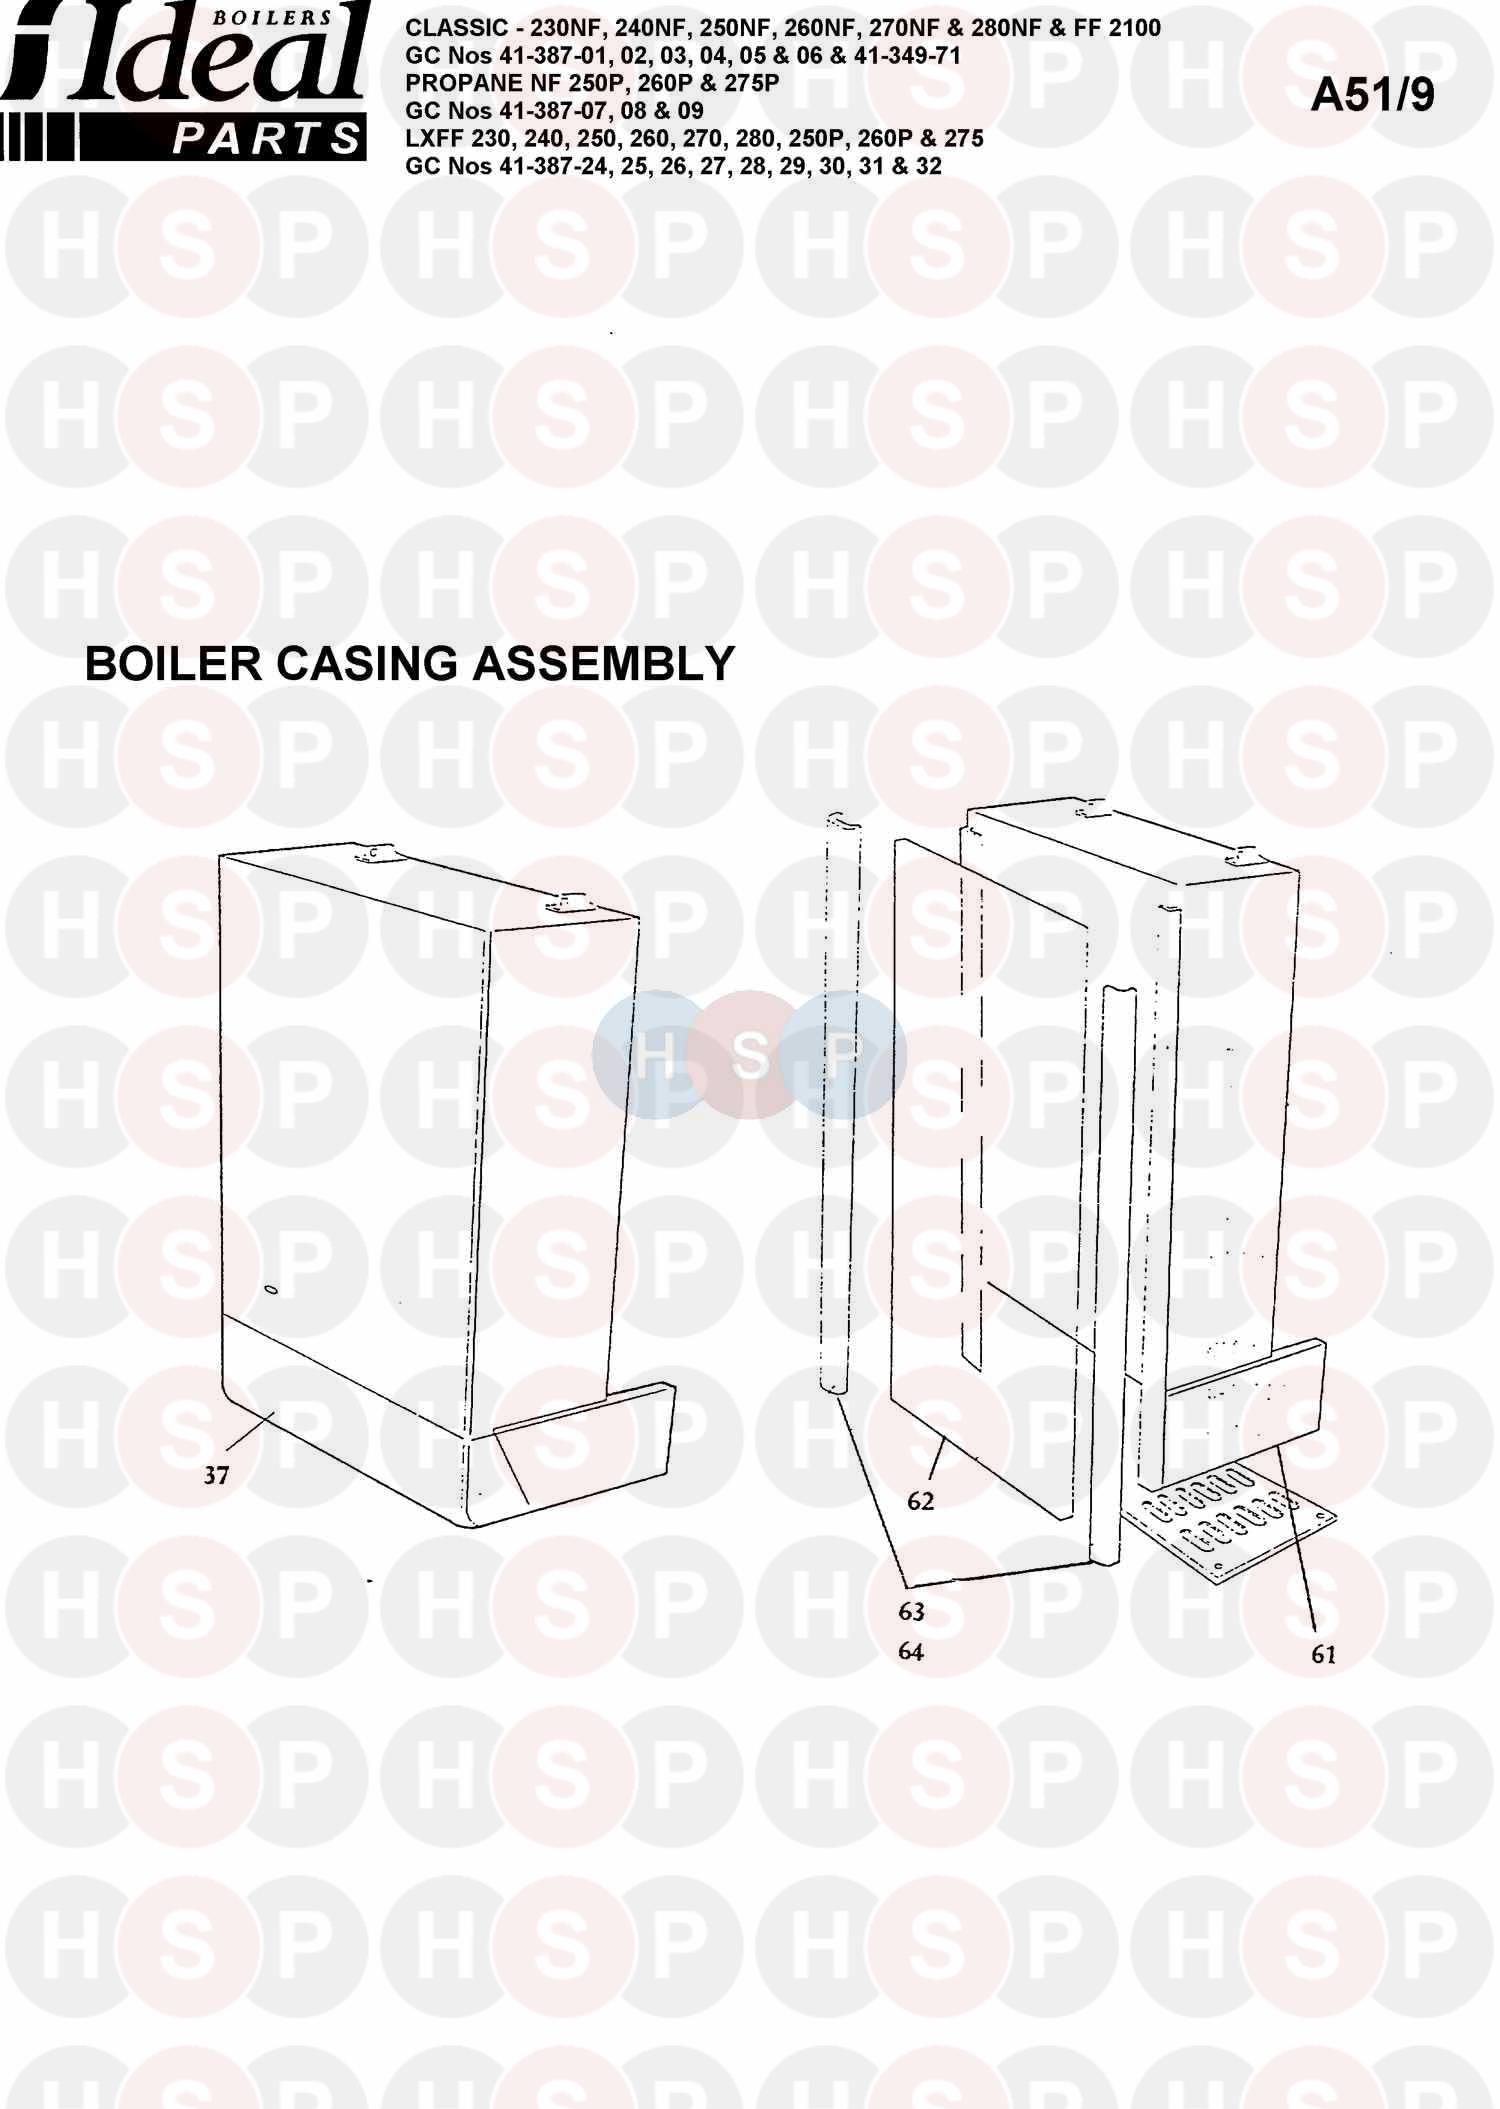 ideal classic lxff 240 appliance diagram  boiler casing